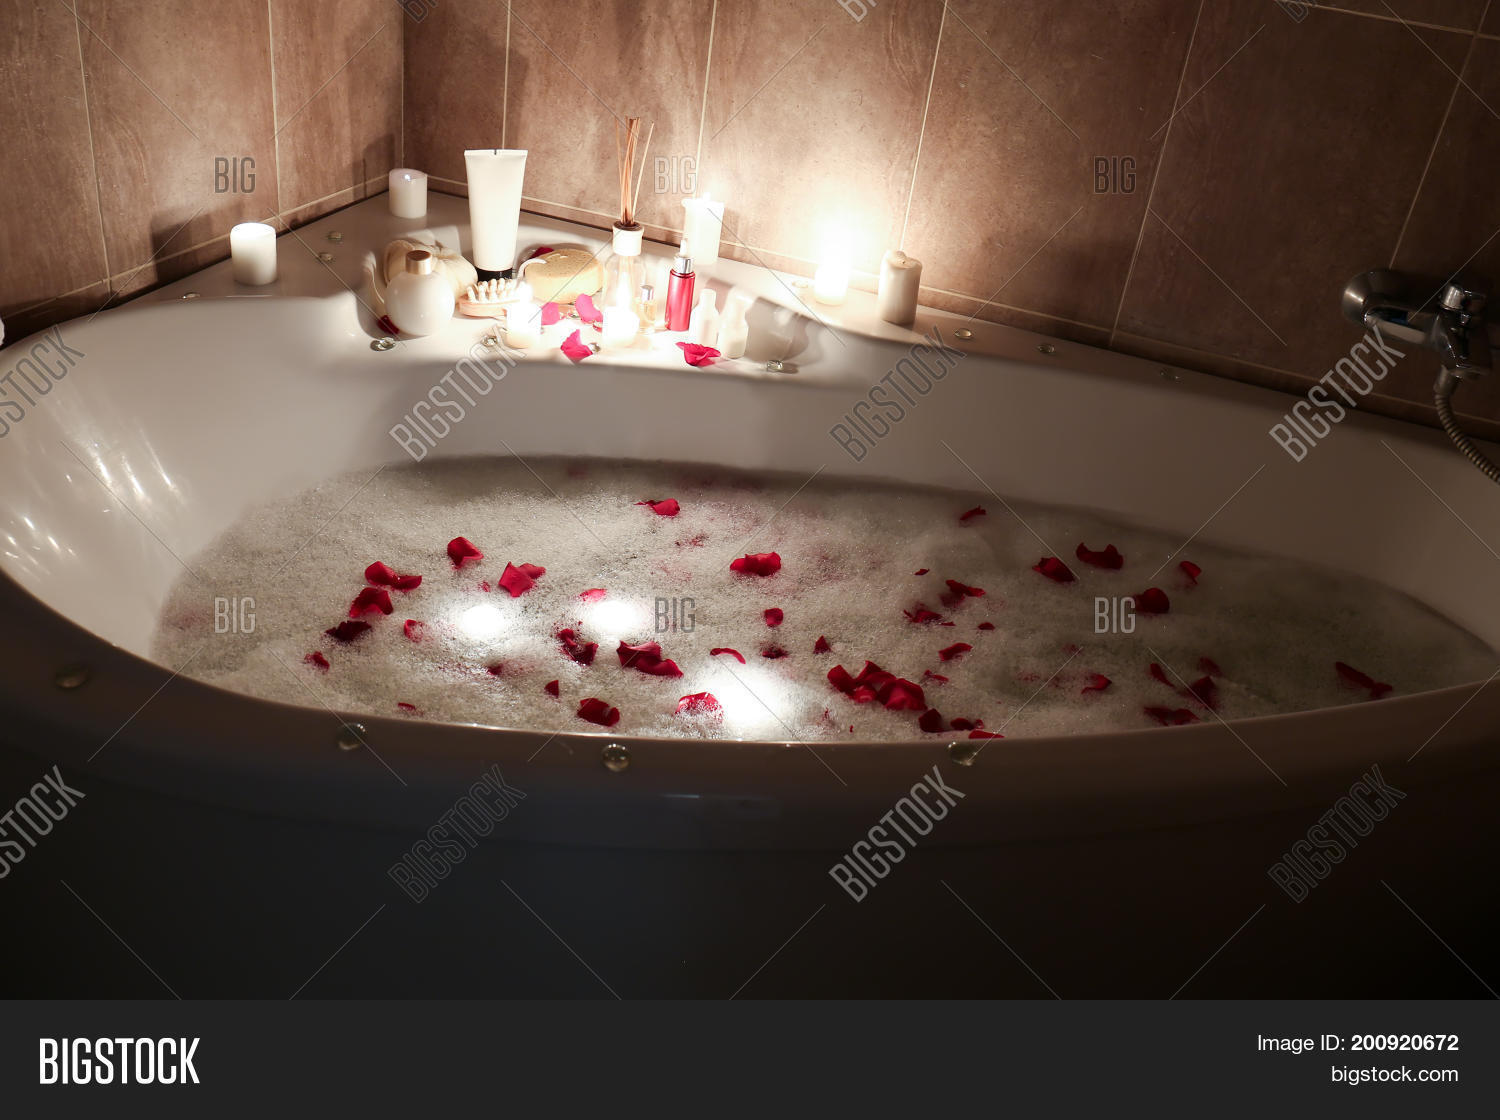 Spa Accessories And Candles On Bathtub Filled With Foam Rose Petals